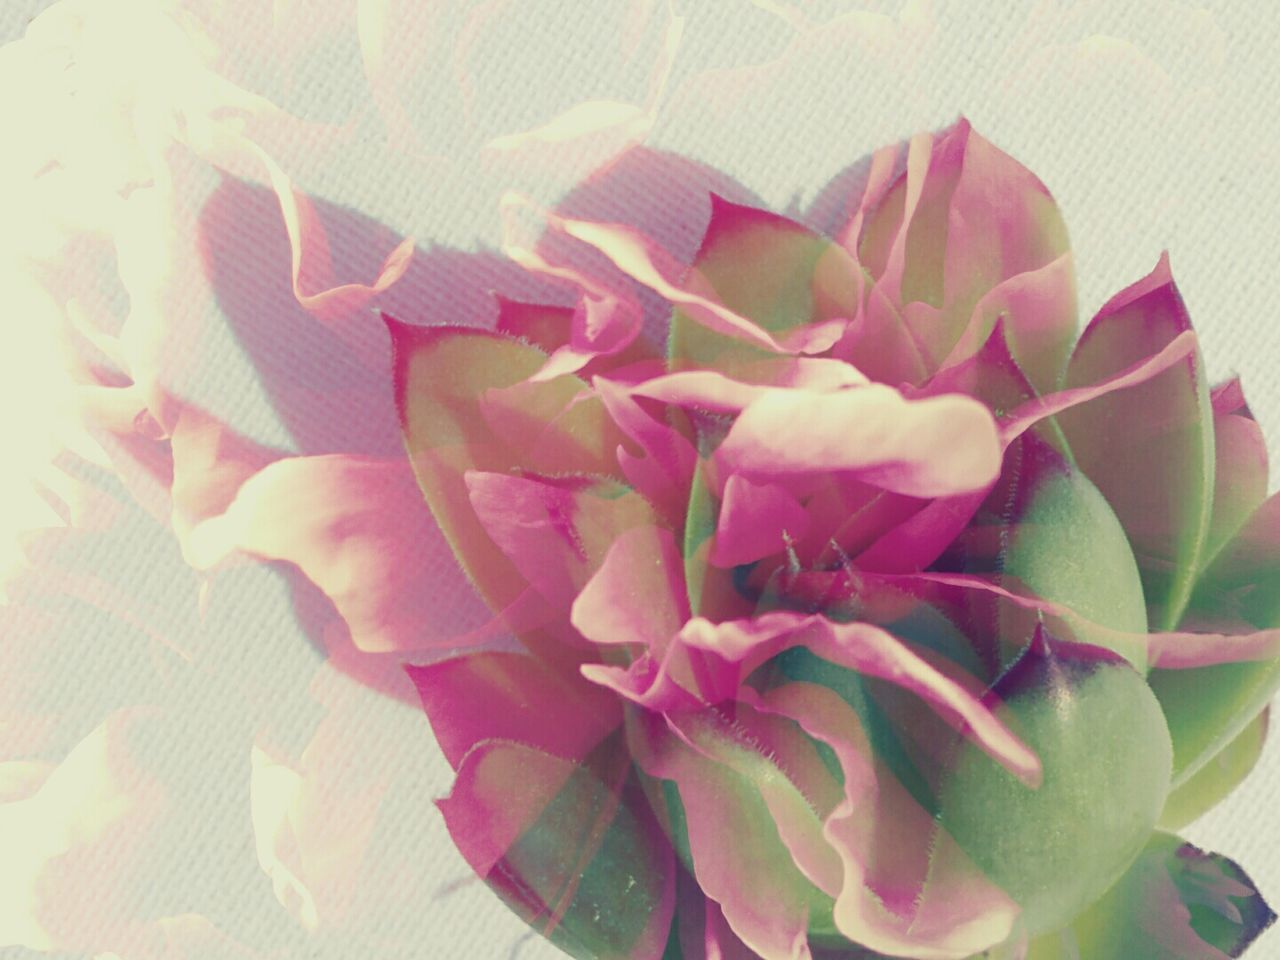 Abstract Flowerhead Double Exposure Succulent Pink White Background Petals Fragile Composition